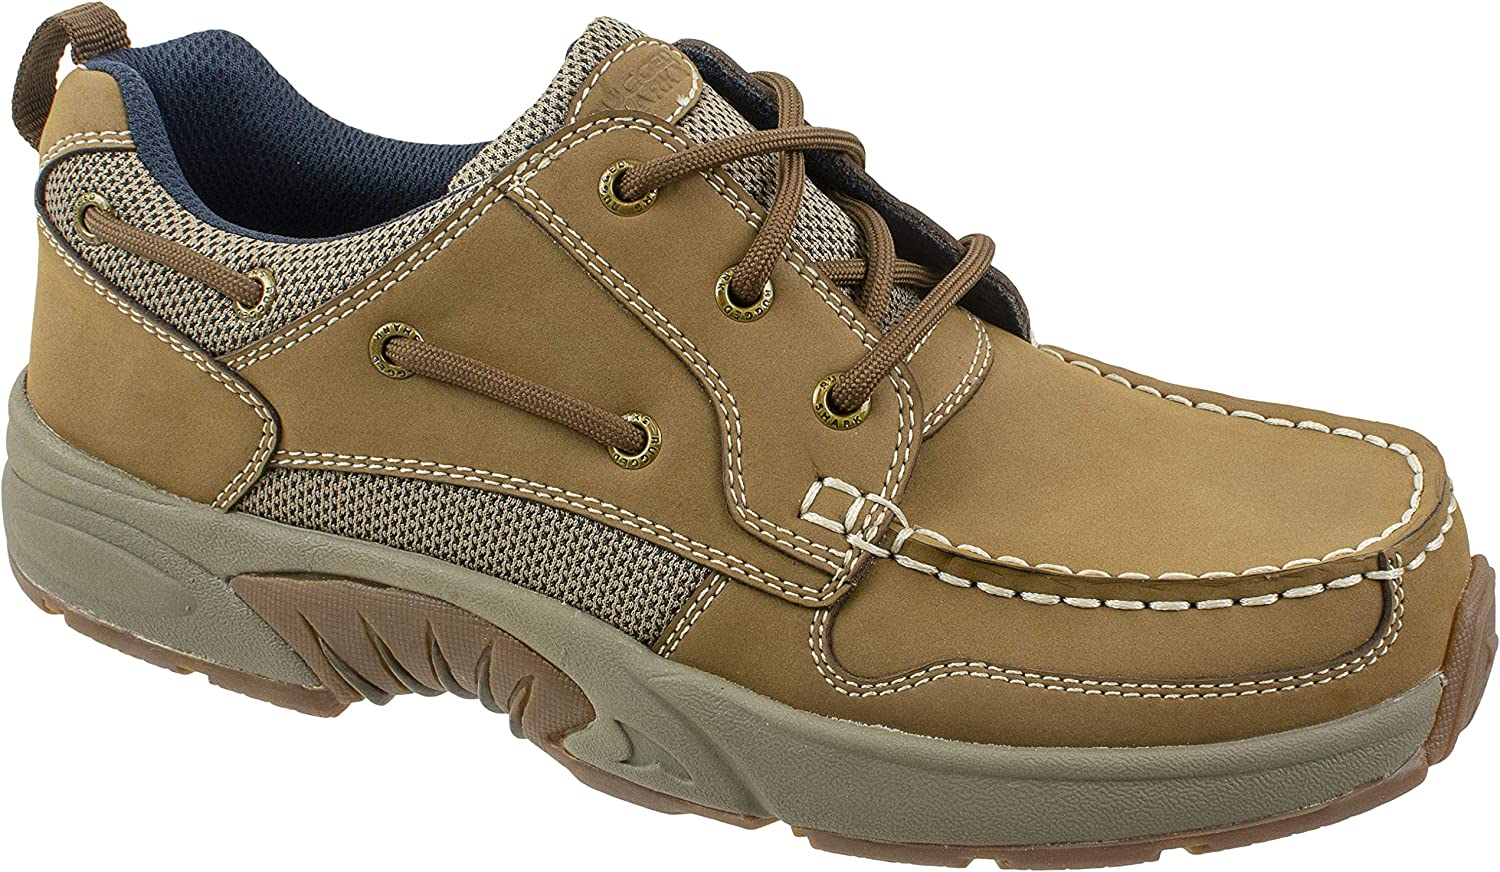 Rugged Shark Men's AXIS Boat Shoe, Premium Leather, Comfort Footbed, Tan, Men's Sizes 9 to 13 Regular and Wide